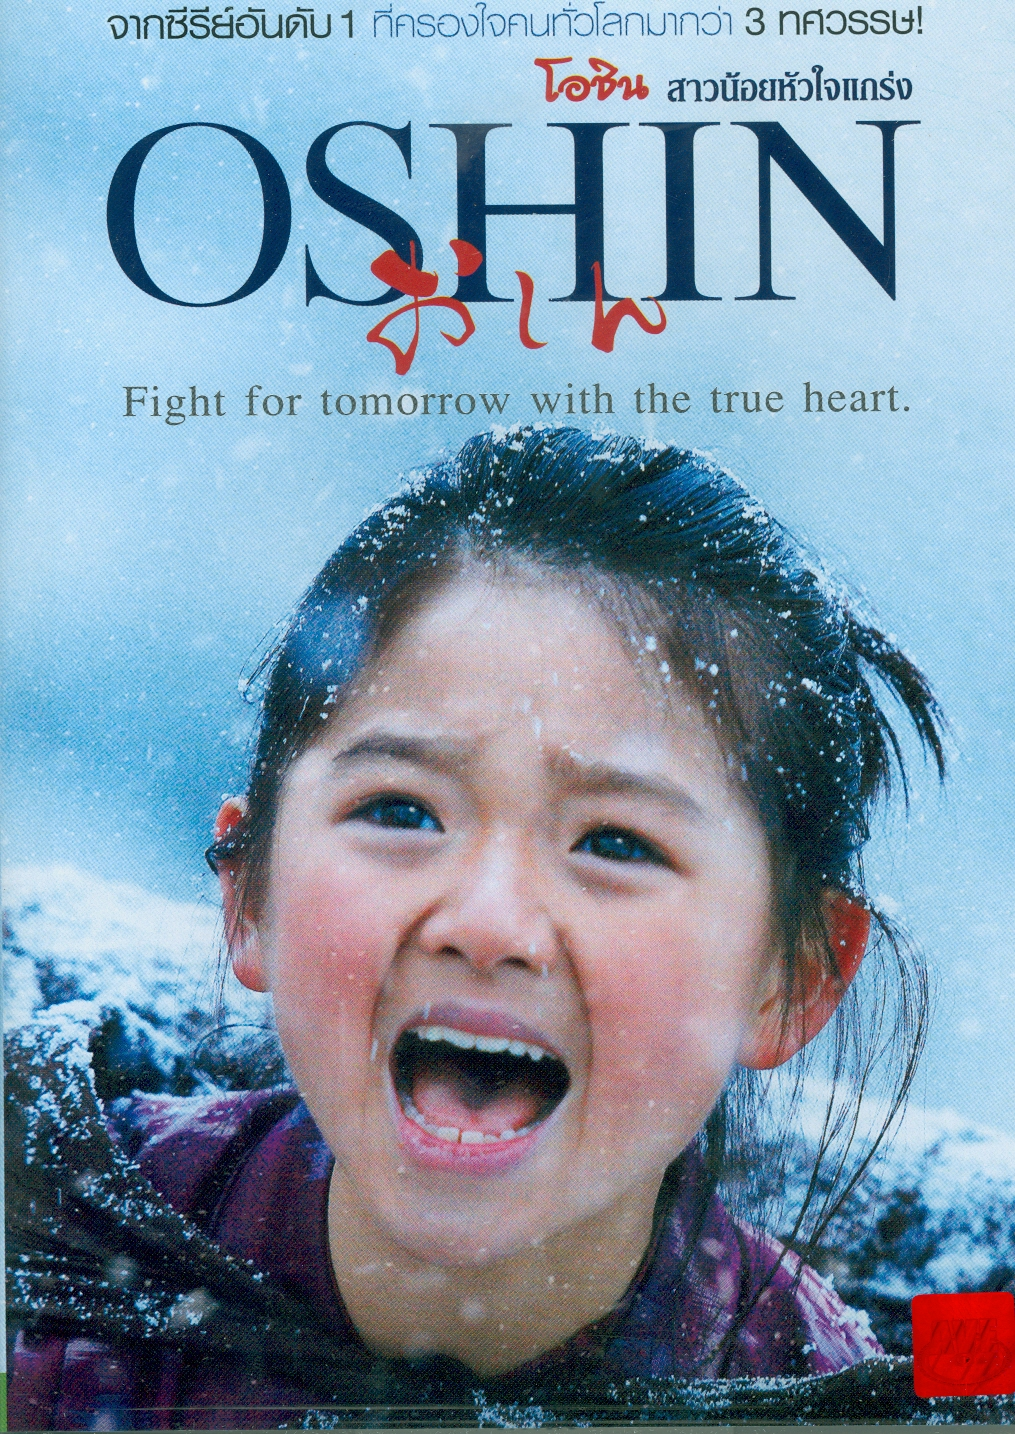 Oshin[videorecording] /Directed by Shin Togashi ; Asahi Shimbun, Cable TV Yamagata, Chubu-nippon Broadcasting Company (CBC)||Oshin : fight for tomorrow with the true heart|โอชิน สาวน้อยหัวใจแกร่ง